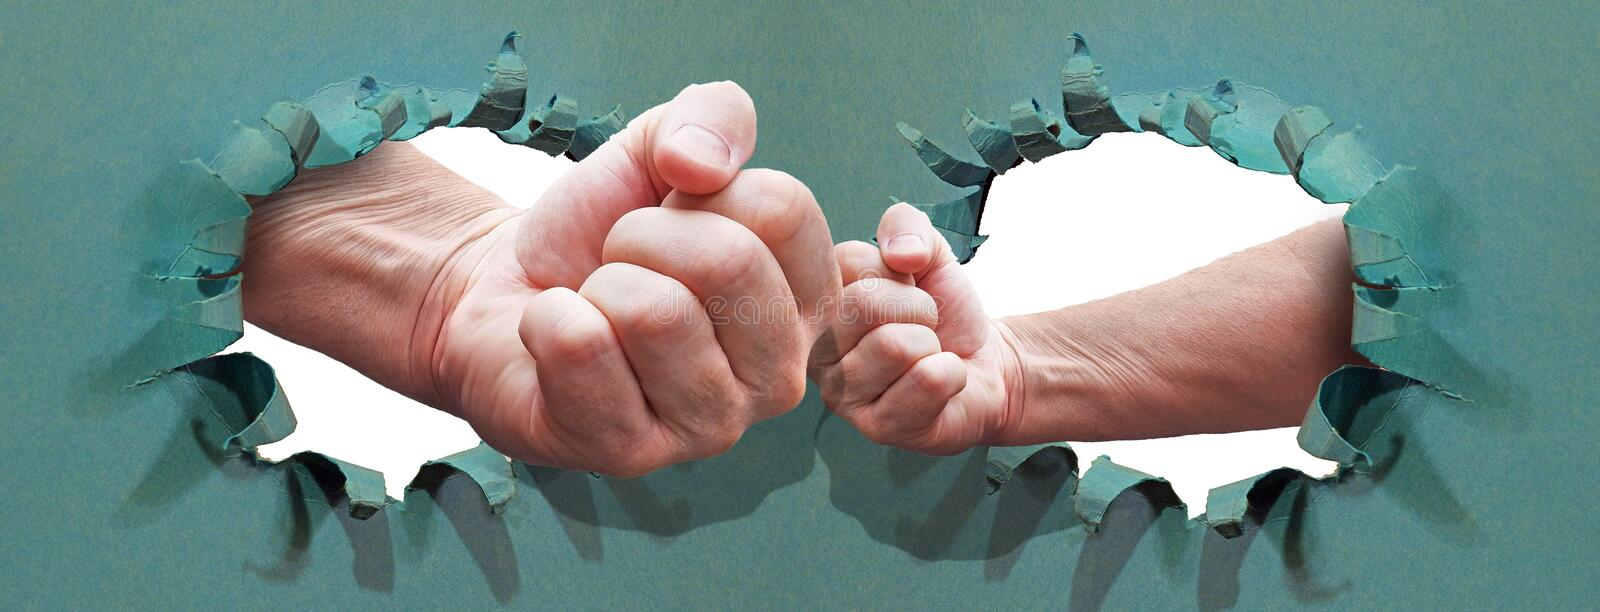 Power over competition fists business success future mighty stock photos